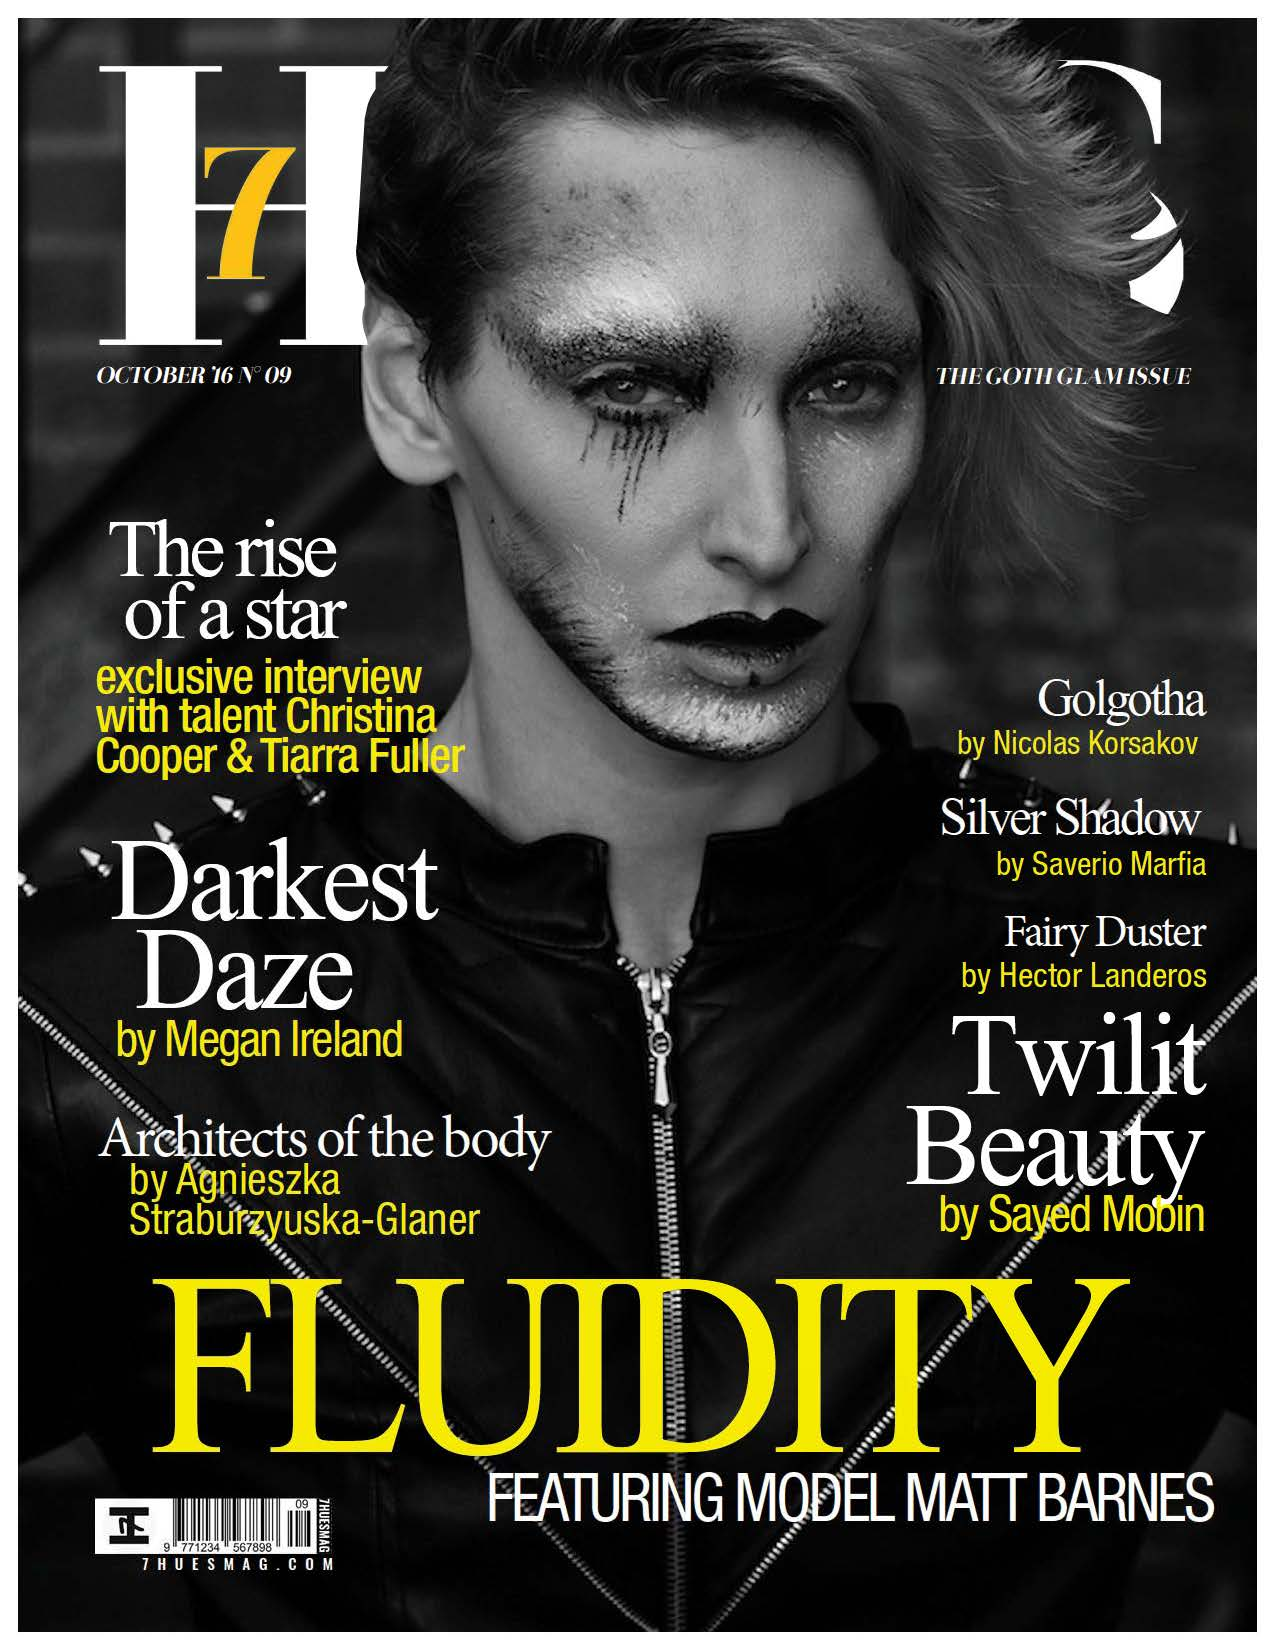 Other_Publications_Issue_09_Goth_Glam.jpg